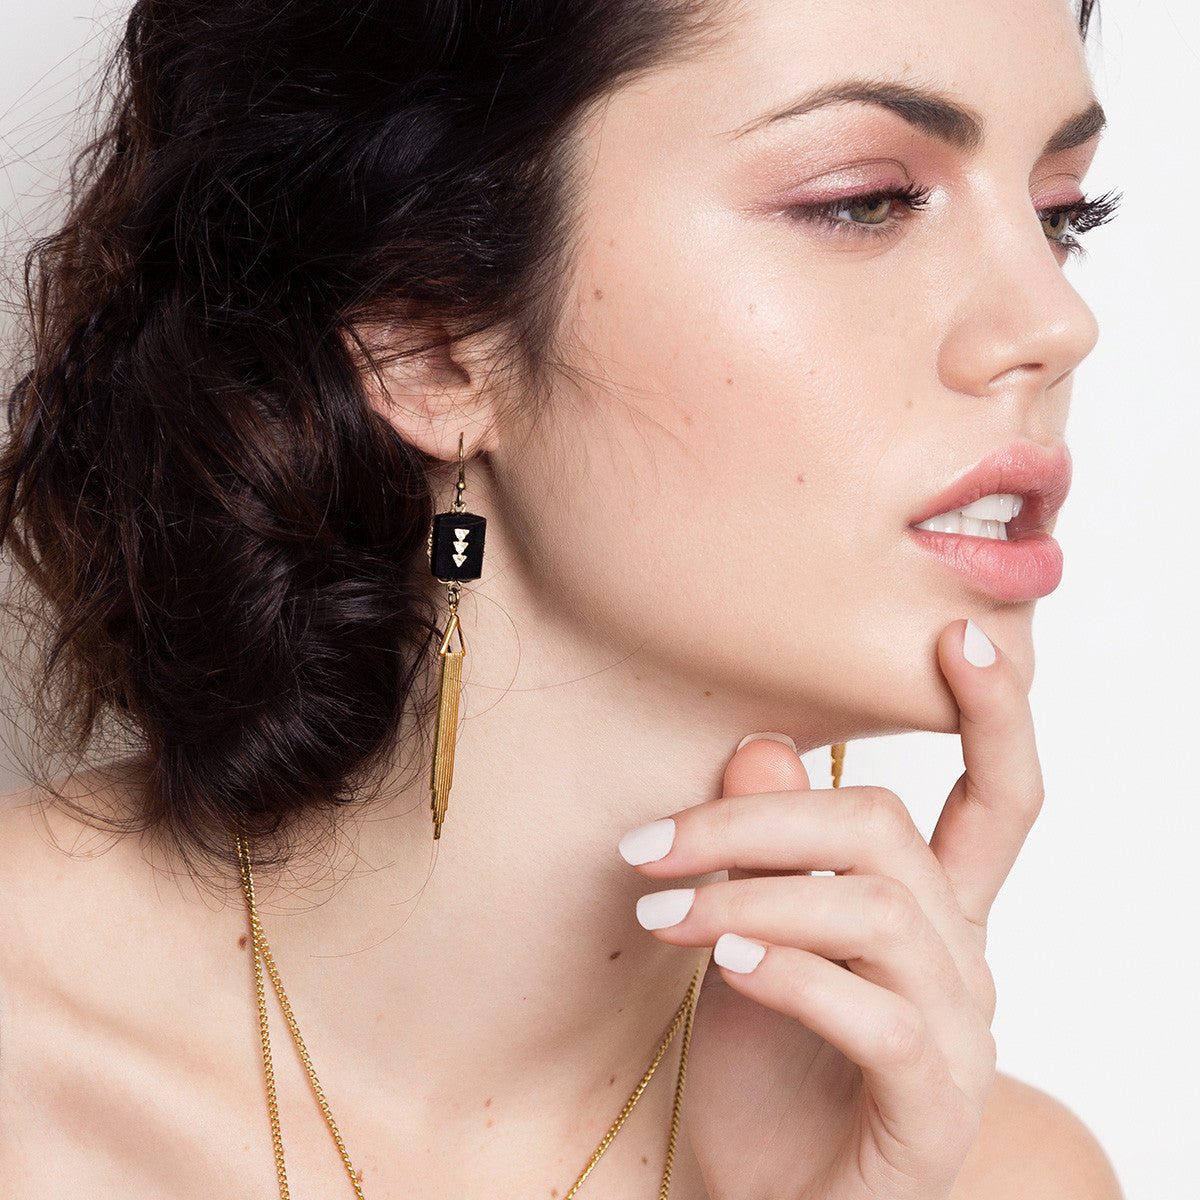 Marion II Earrings (SD793) - Sandrine Devost Jewelry